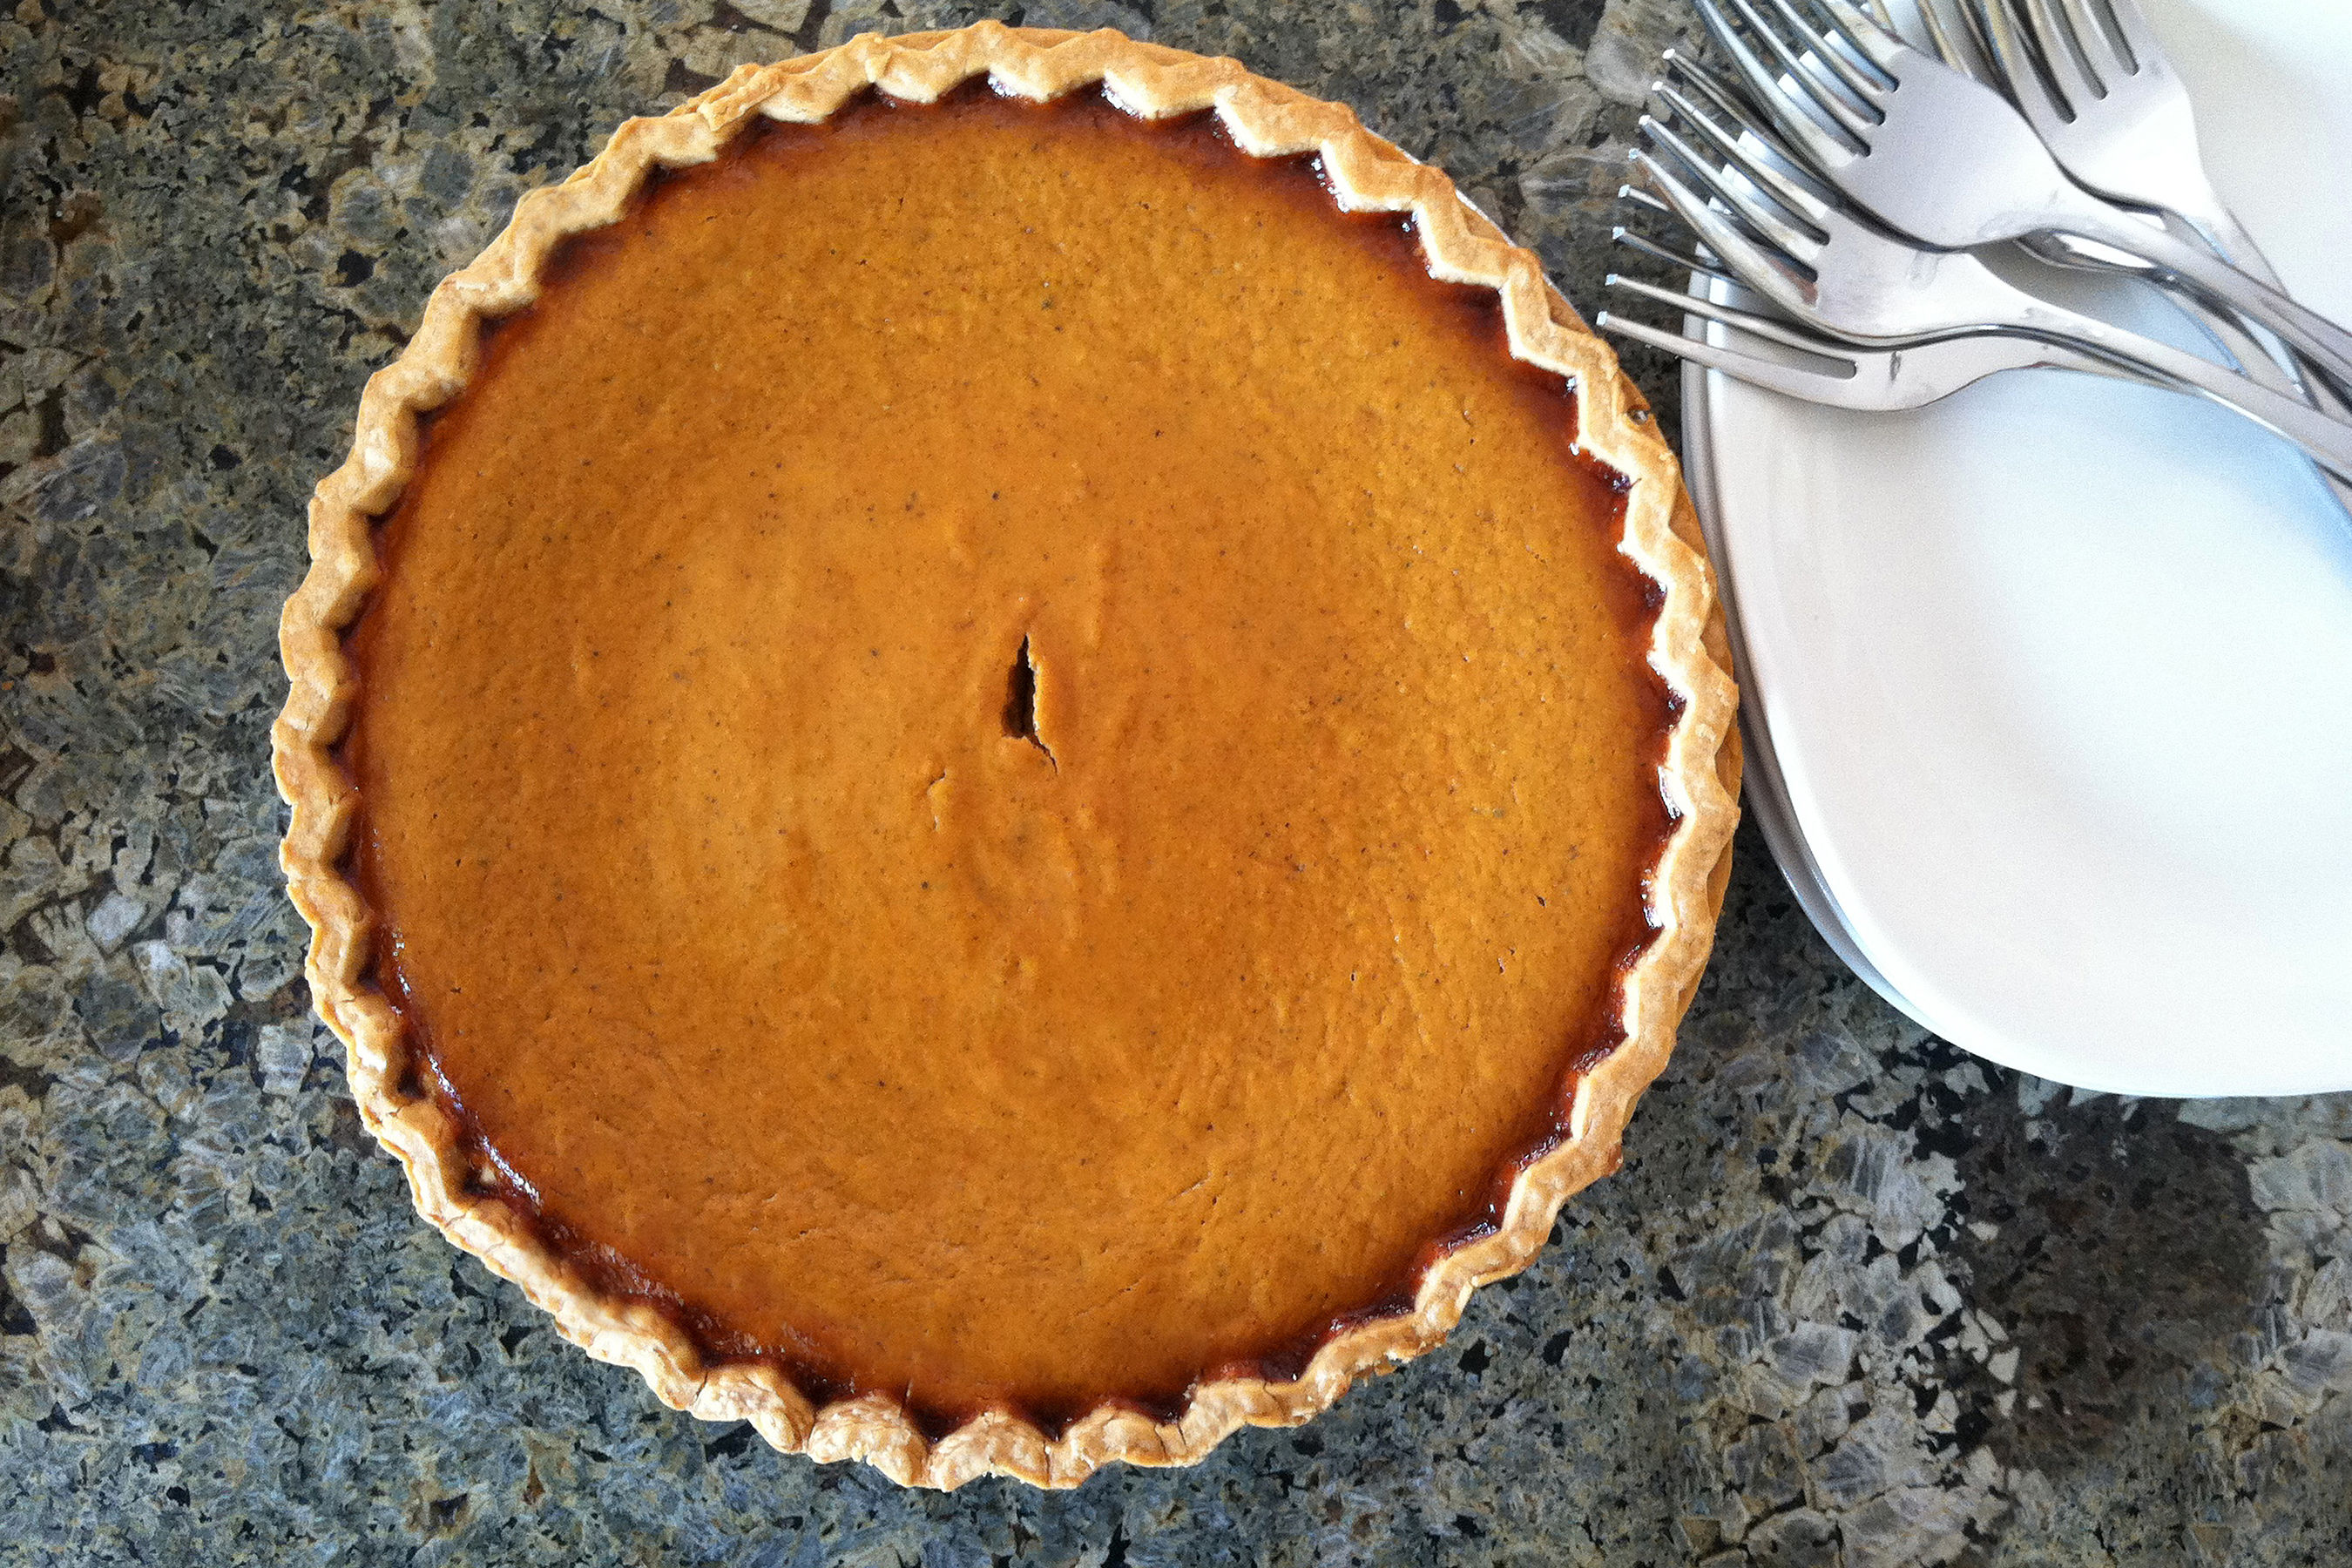 Costco Is Already Selling Their Famous Pumpkin Pie and the Internet Can't Handle It